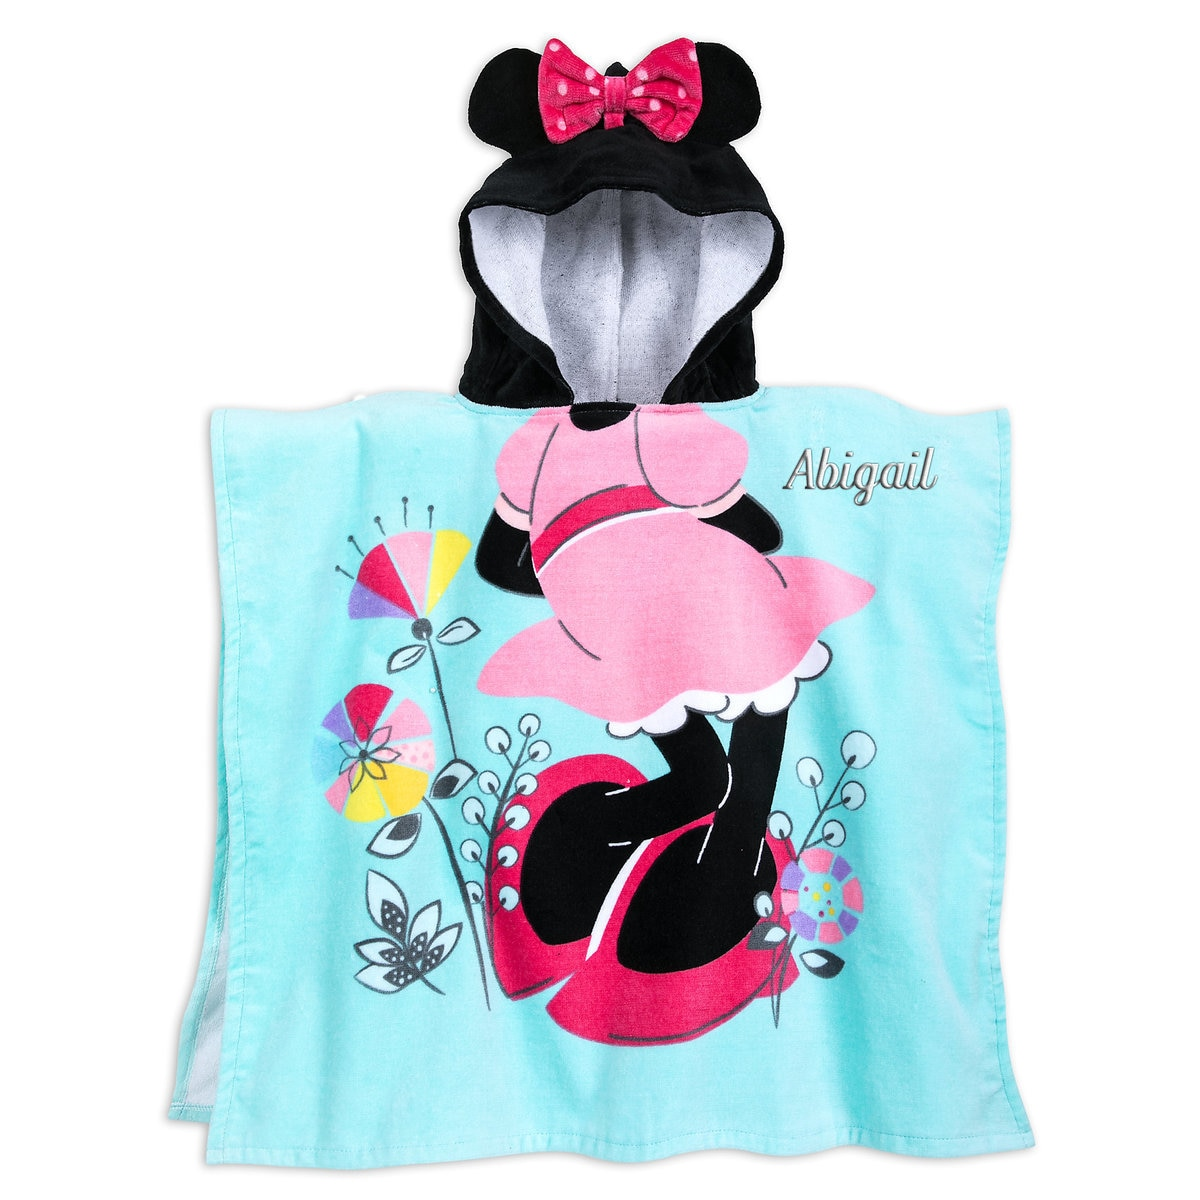 Minnie Mouse Hooded Towel for Kids - Personalizable | shopDisney